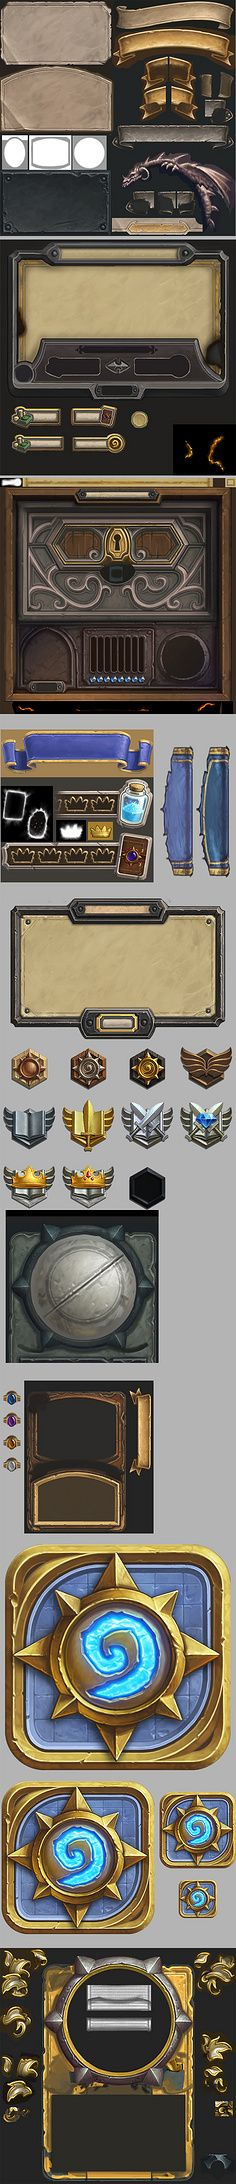 ui assets from hearthstone broken down